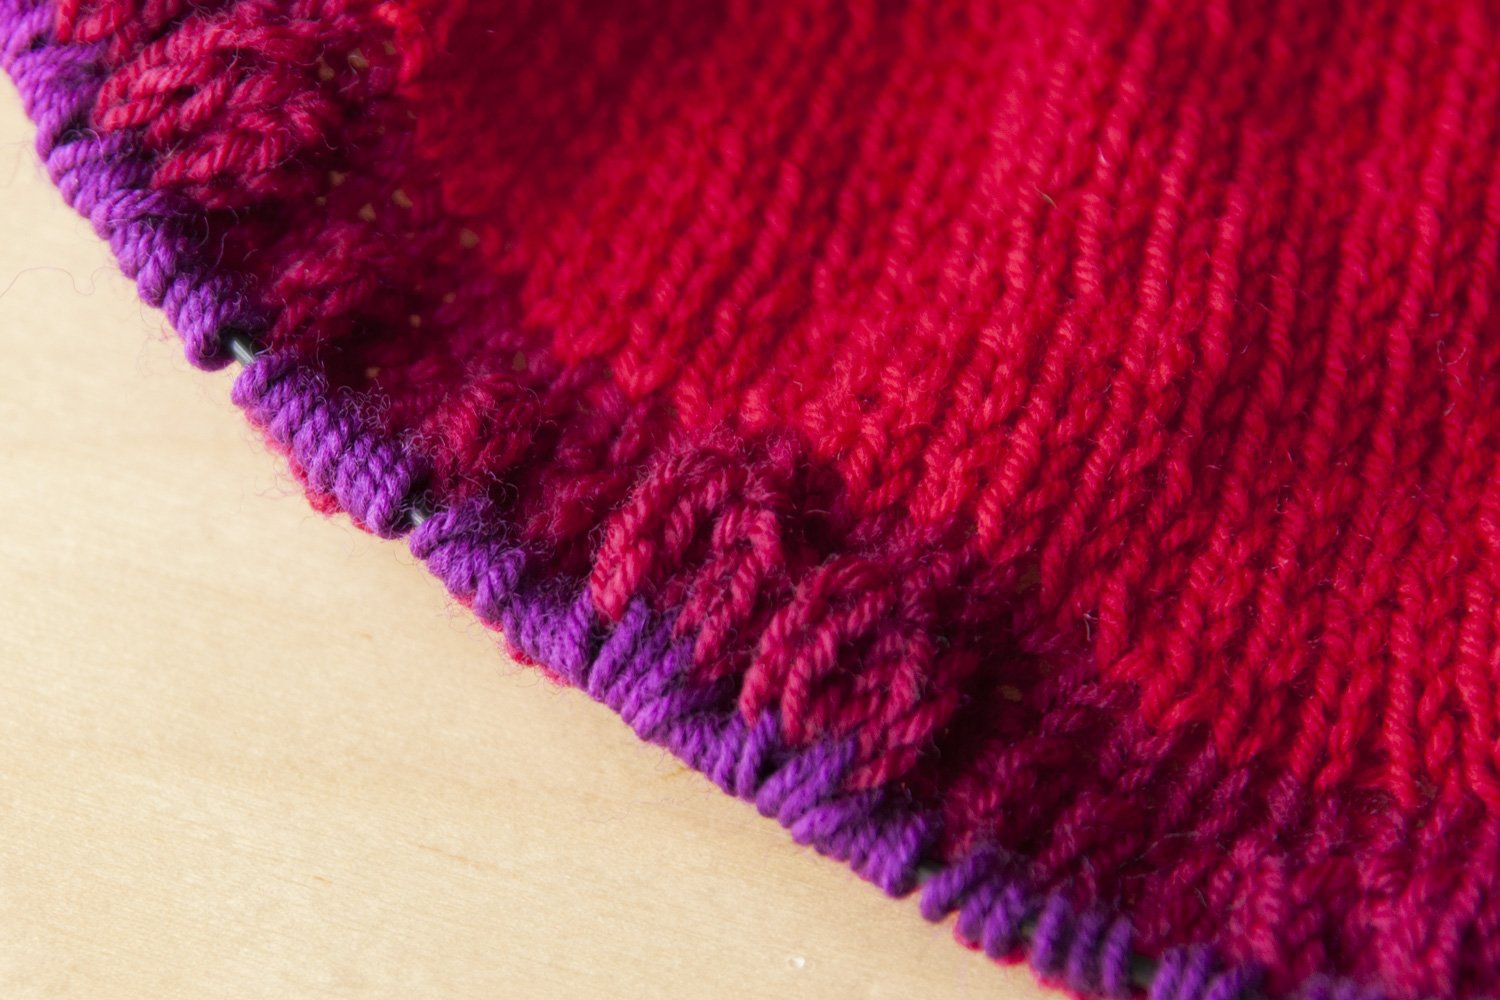 Knitting Kfbf : Kal tutorial kfbf laura chau